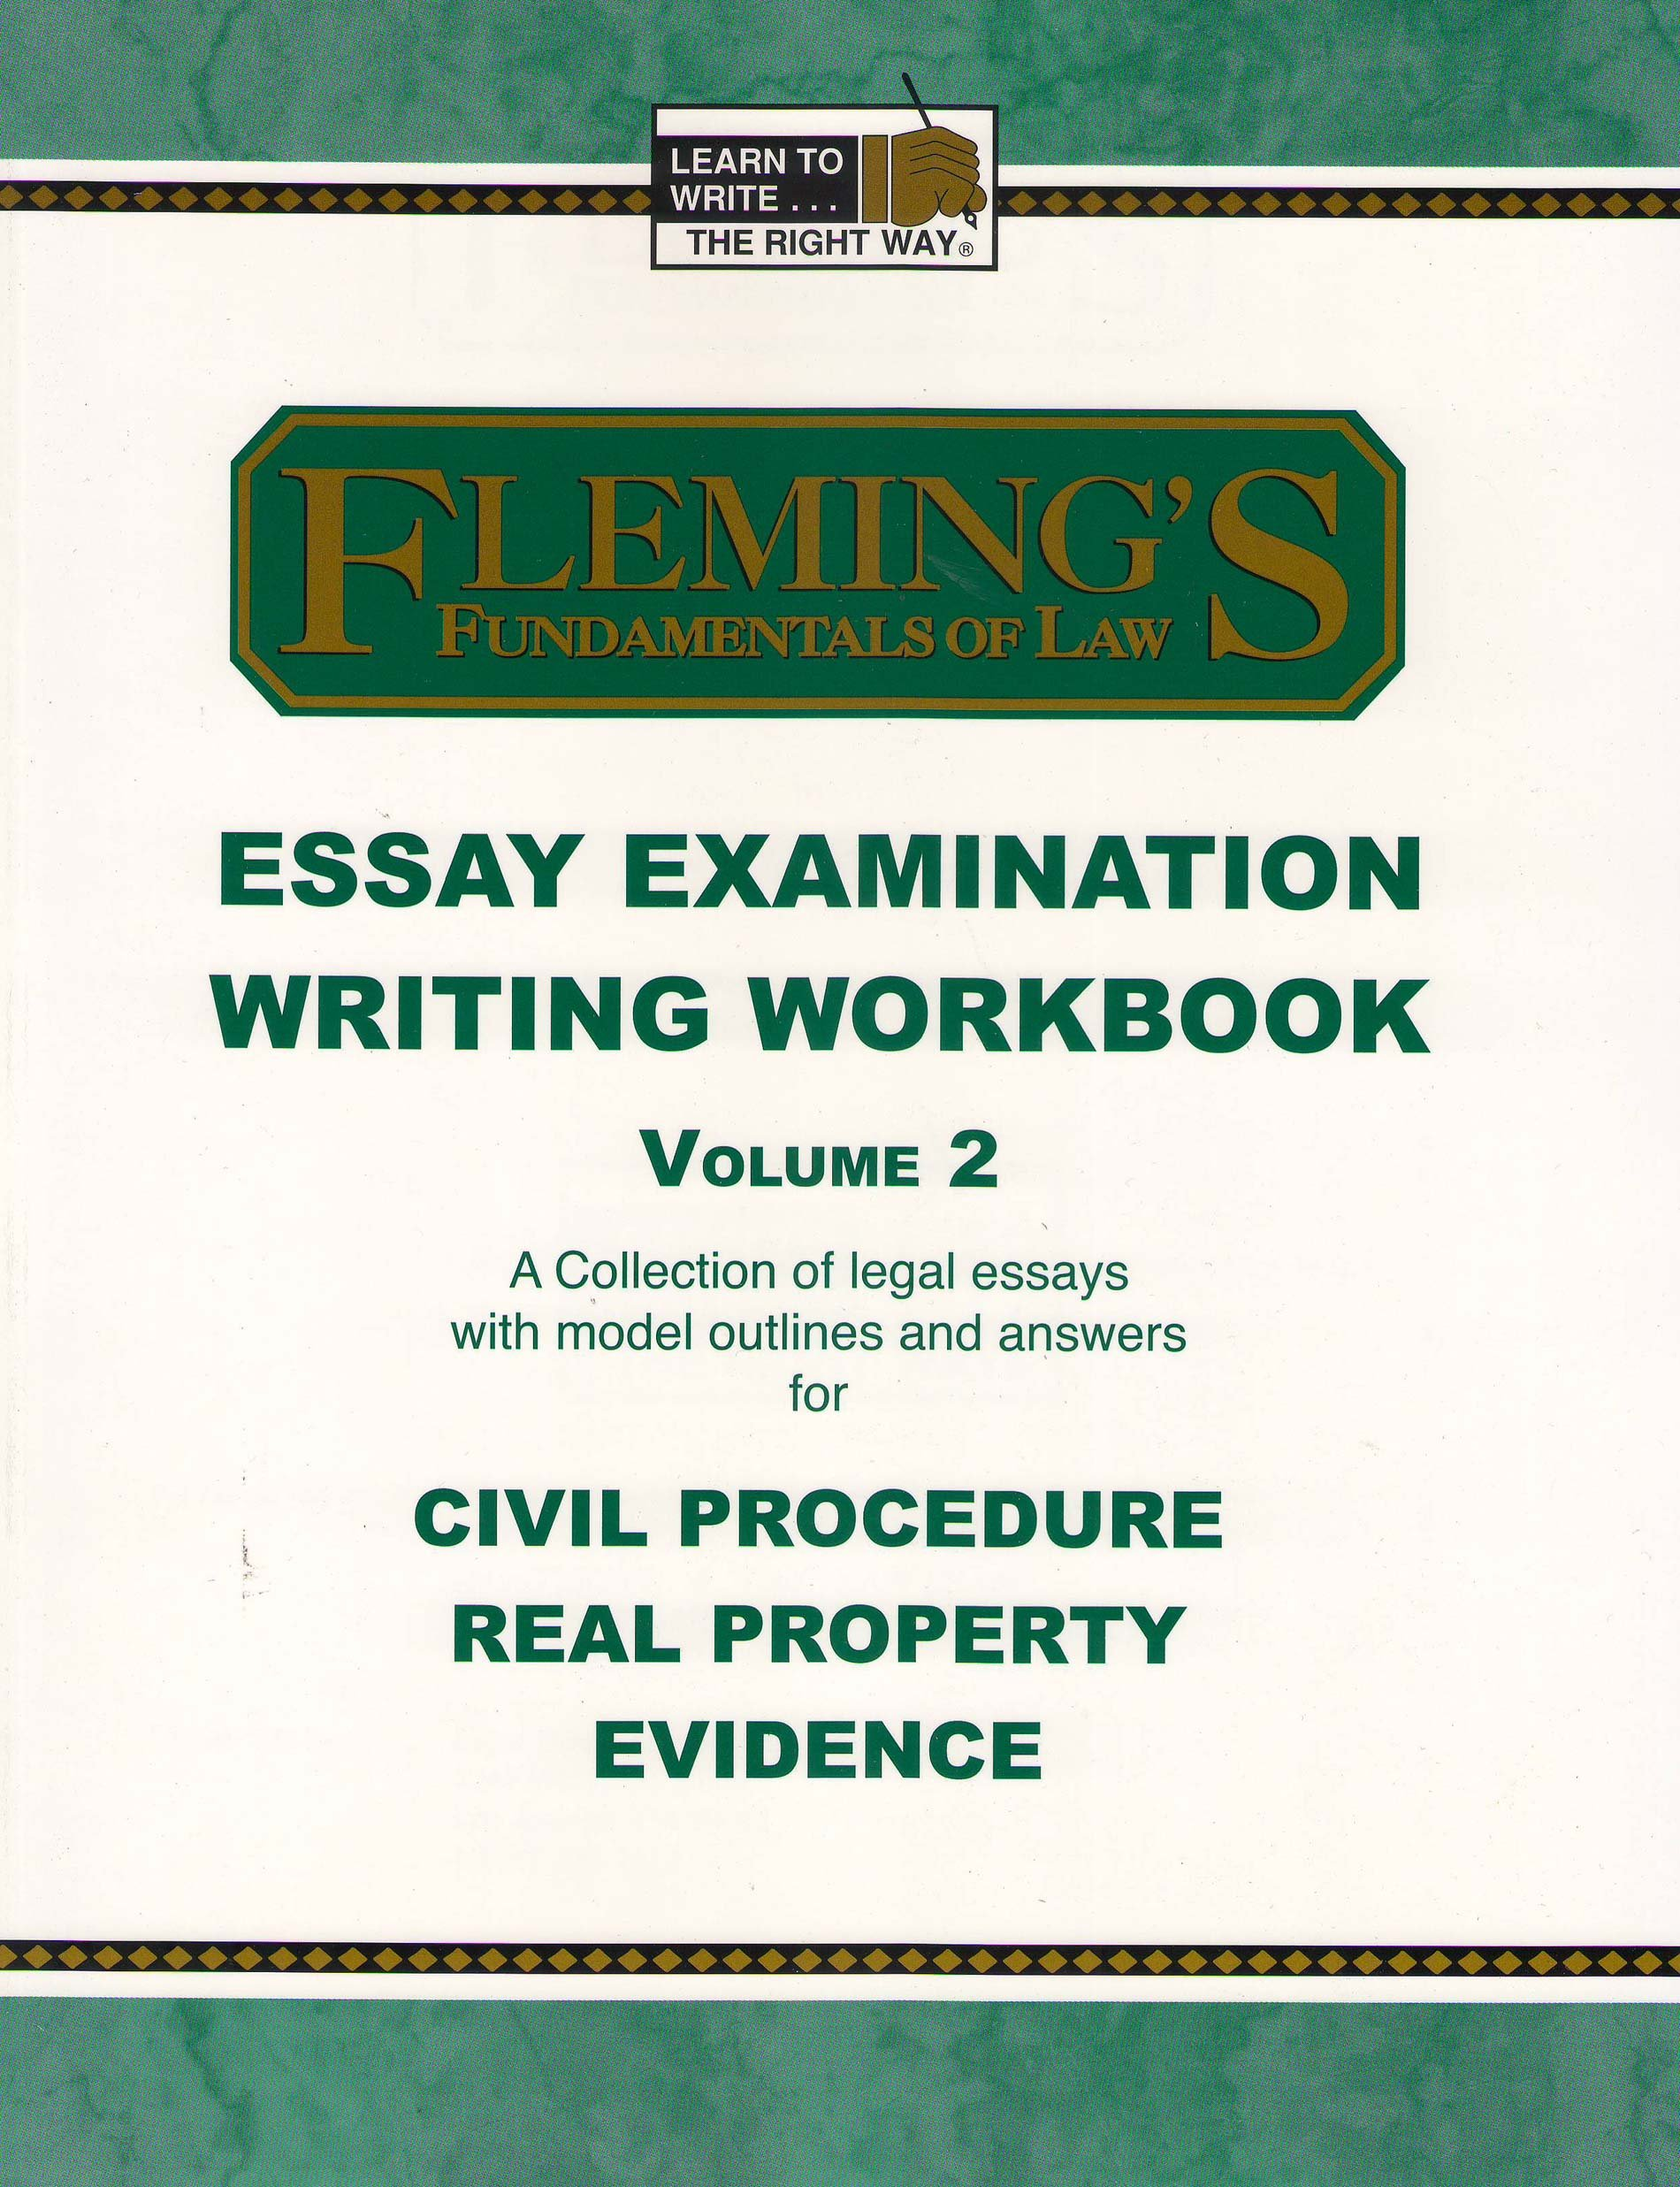 Essay Writing Examples For High School Essay Exam Writing Workbook Volume  Civil Procedure Real Property And  Evidence Jeff A Fleming  Amazoncom Books How To Write Essay Papers also Essay On Religion And Science Essay Exam Writing Workbook Volume  Civil Procedure Real Property  Reflective Essay On English Class